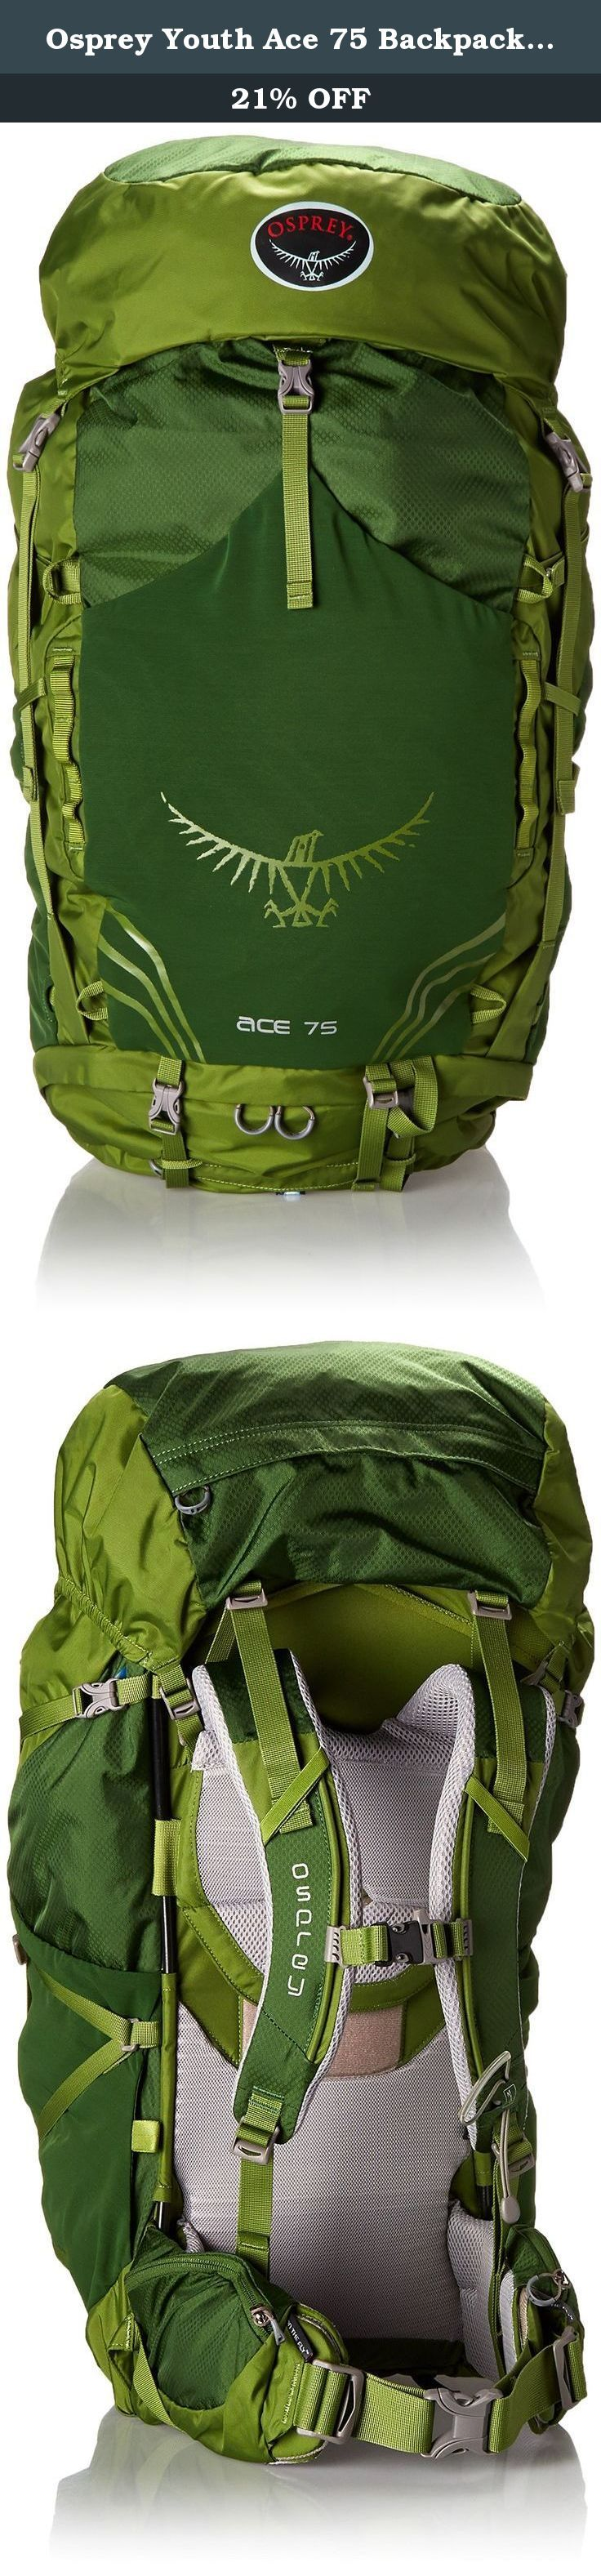 Osprey Youth Ace 75 Backpack, Ivy Green, One Size. The Ace 75 is a torso and hip belt adjustable technical daypack for young outdoor enthusiasts. The Ace 75 provides the capacity and organization required by outdoor education groups. Recommended age range: 11-18.